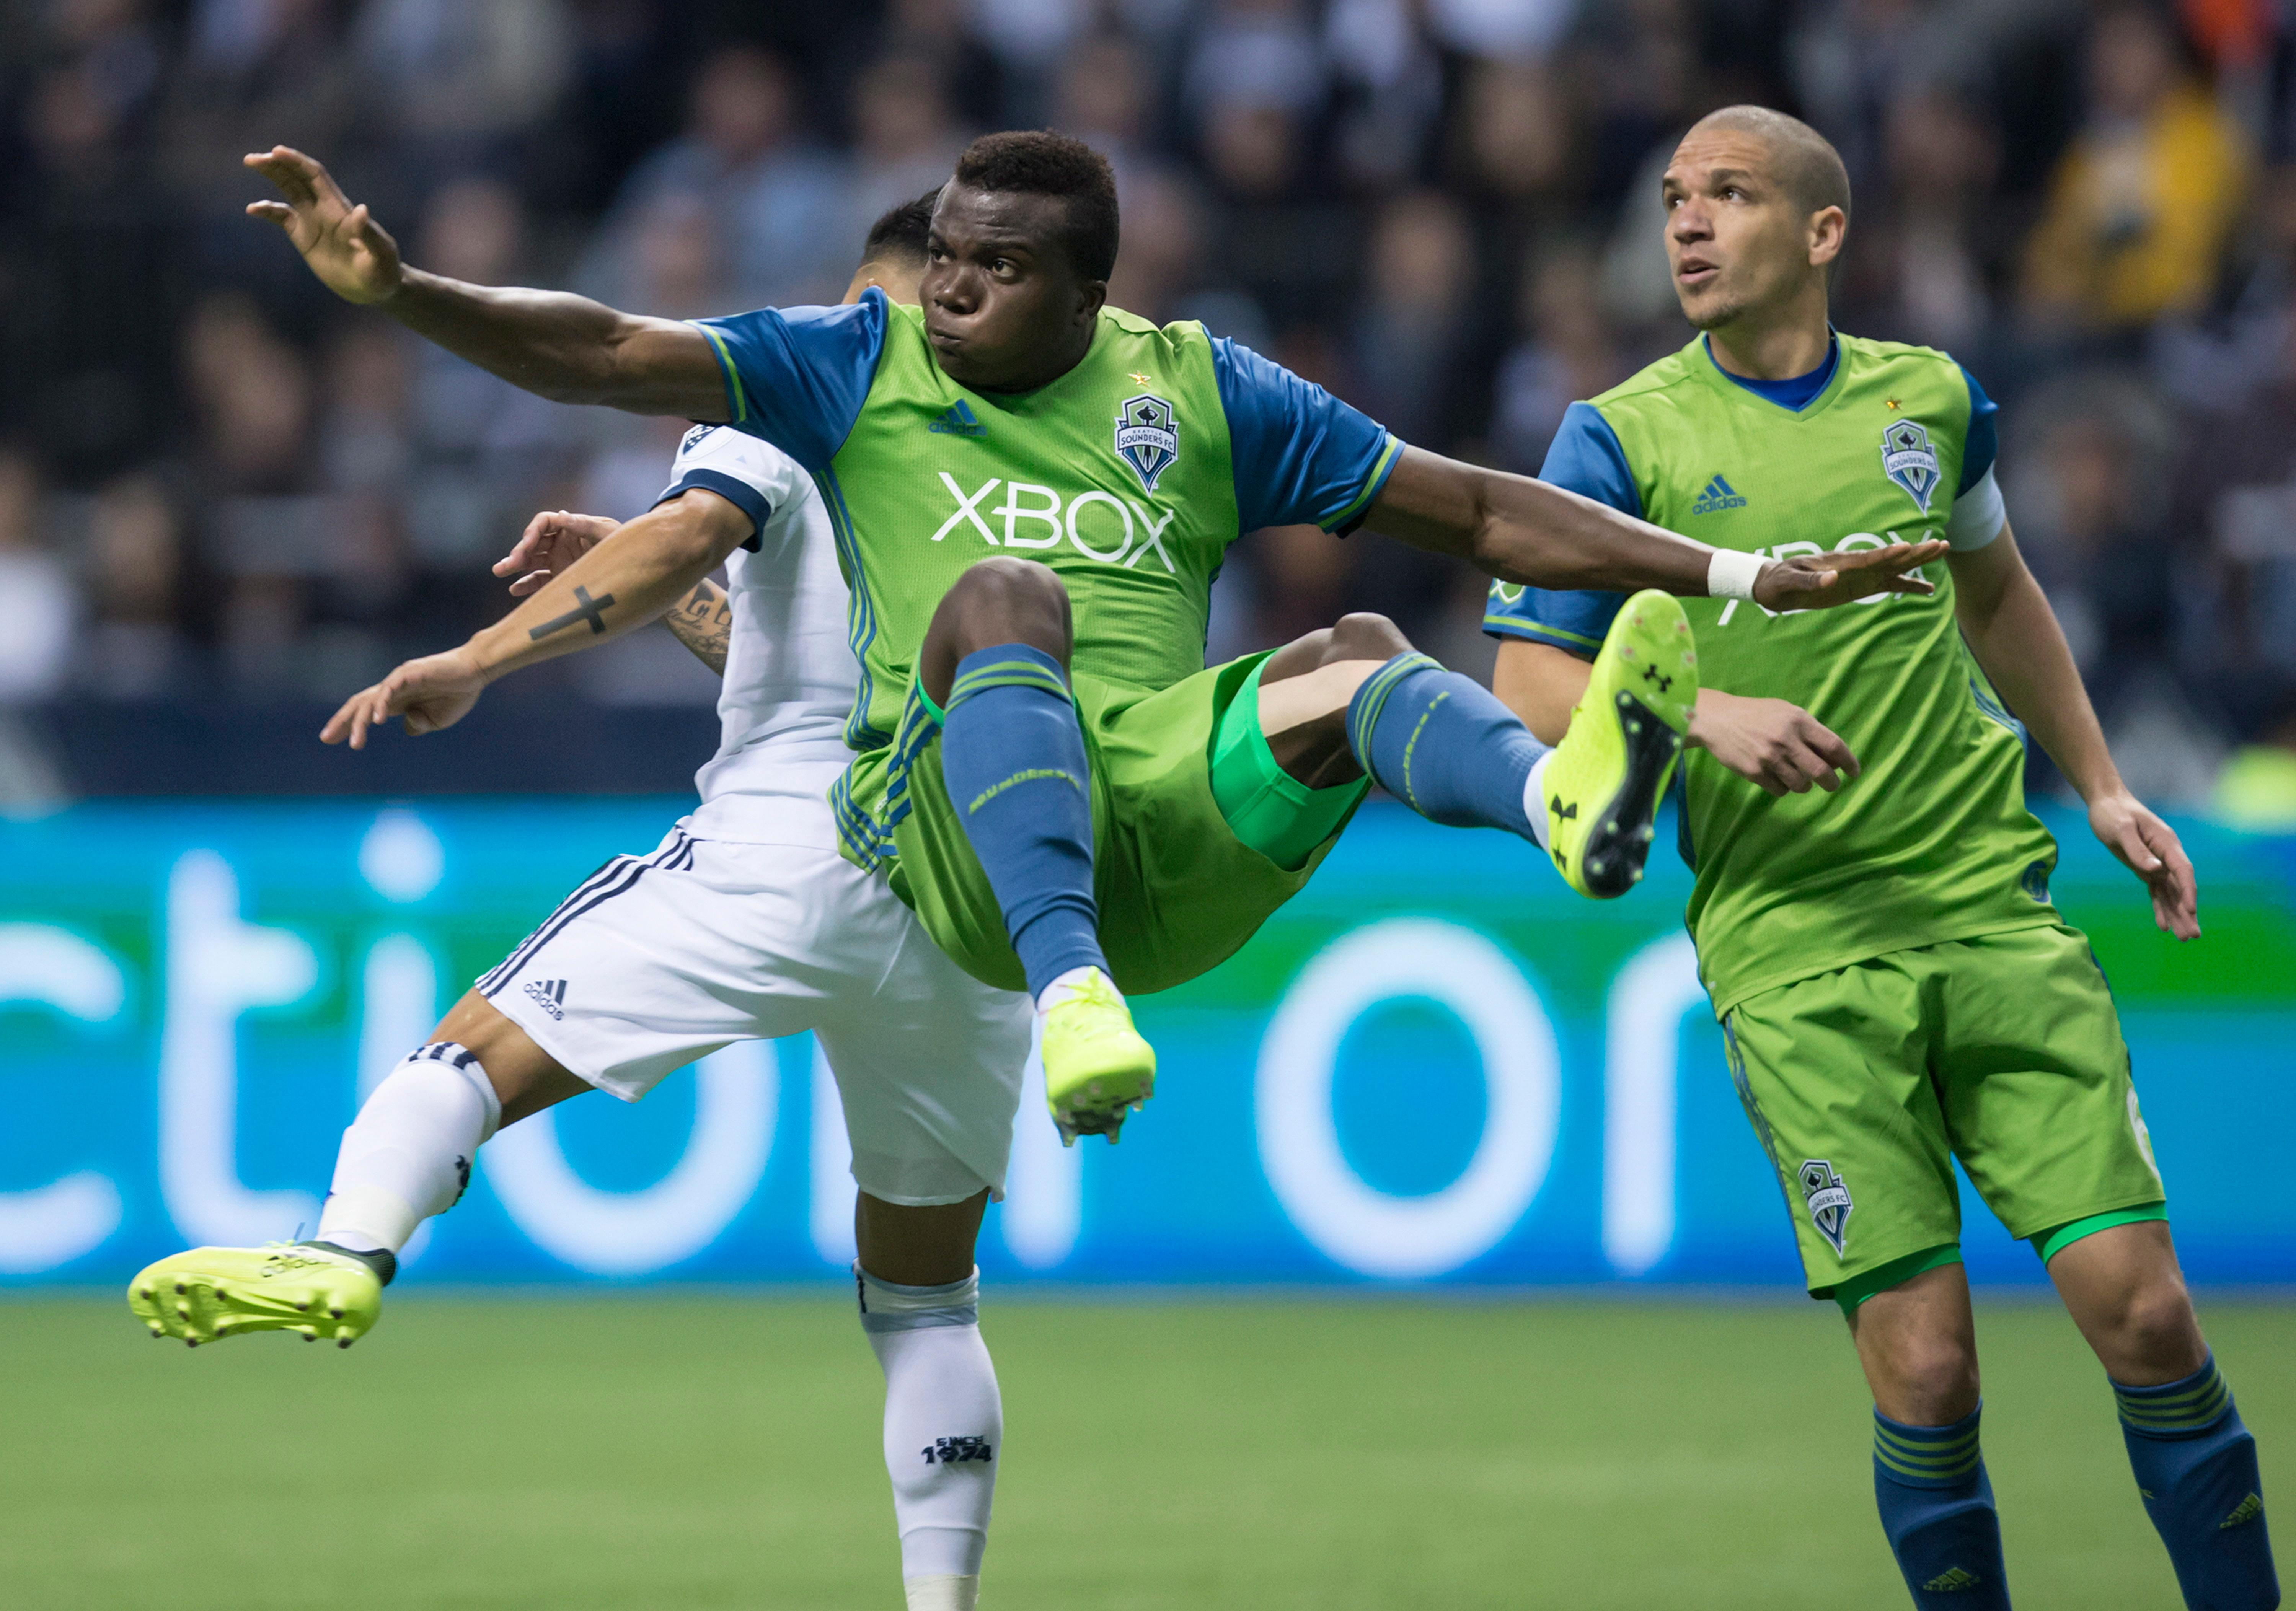 Seattle Sounders' Nouhou, front, of Cameroon, falls to the ground after kicking the ball away from Vancouver Whitecaps' Cristian Techera, back left, of Uruguay, as Seattle's Osvaldo Alonso, of Cuba, watches during the second half of an MLS playoff soccer match in Vancouver, British Columbia, Sunday, Oct. 29, 2017. (Darryl Dyck/The Canadian Press via AP)